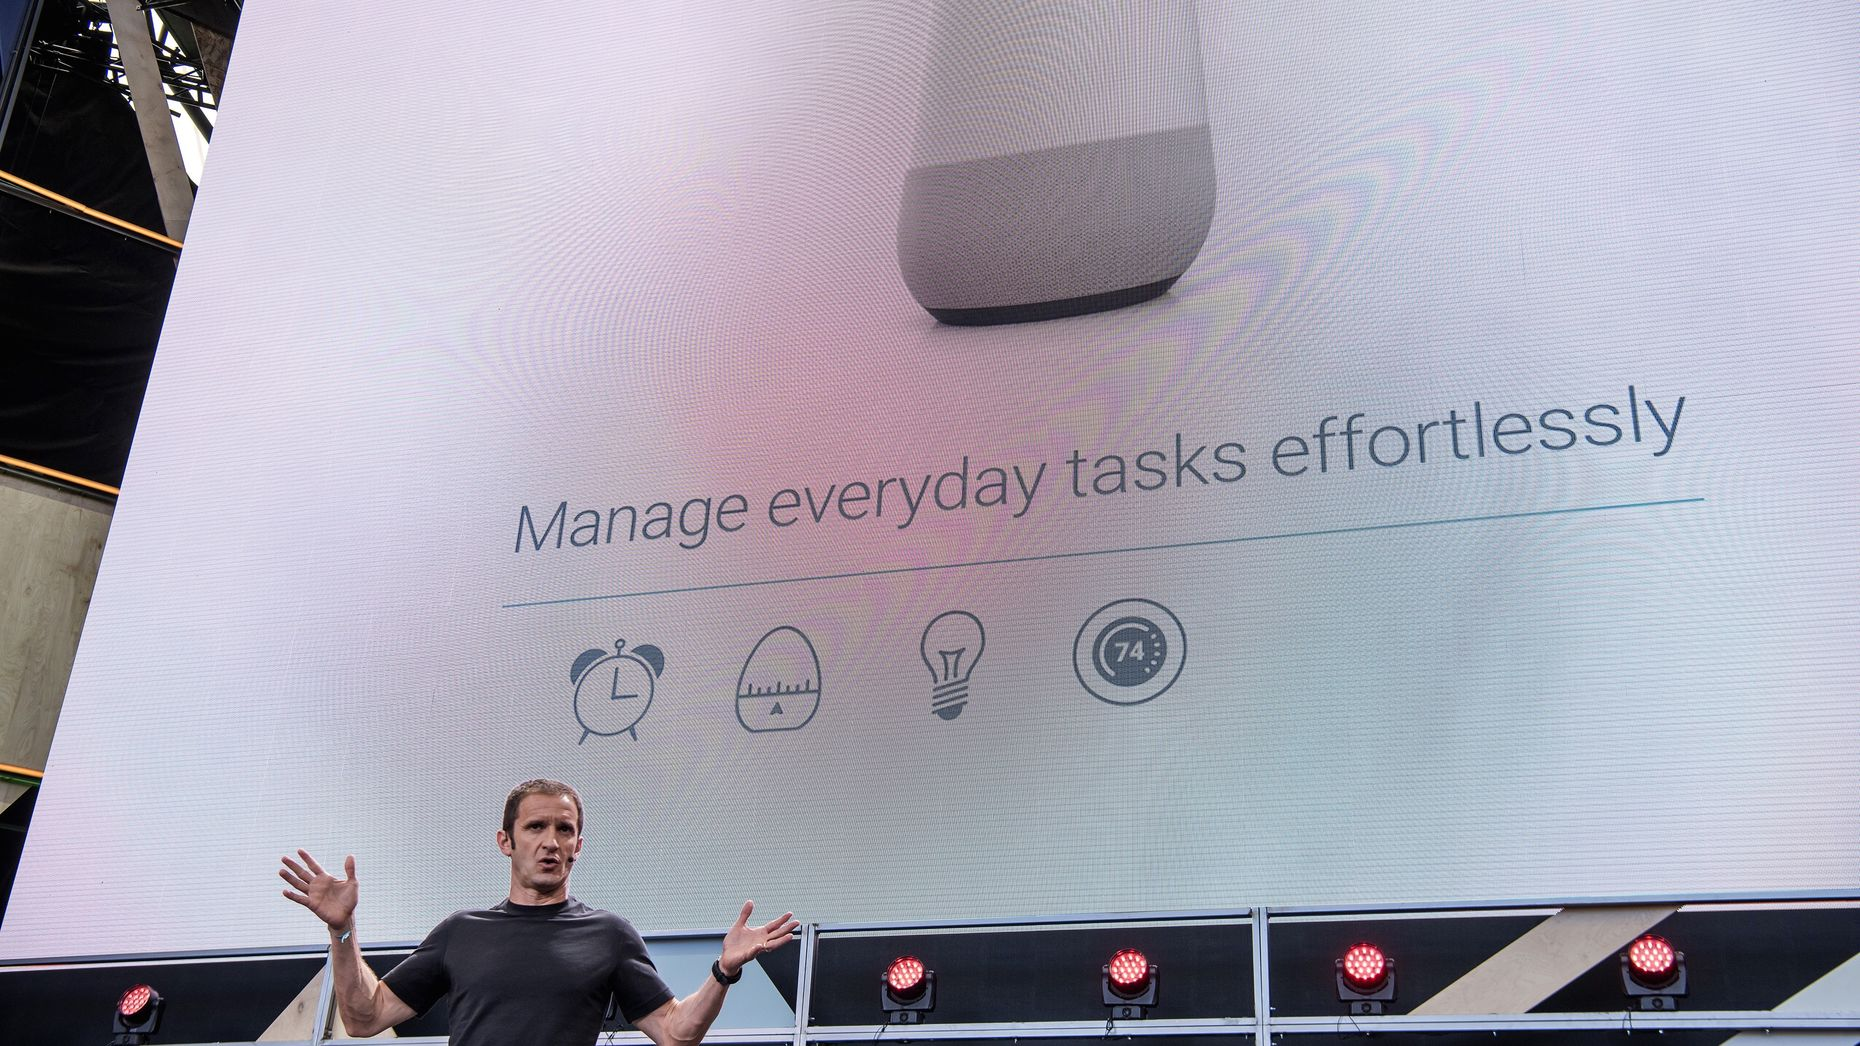 Google's Vice President of Product Management, Mario Queiroz, talking about Google Home at Google I/O this month. Photo by Bloomberg.